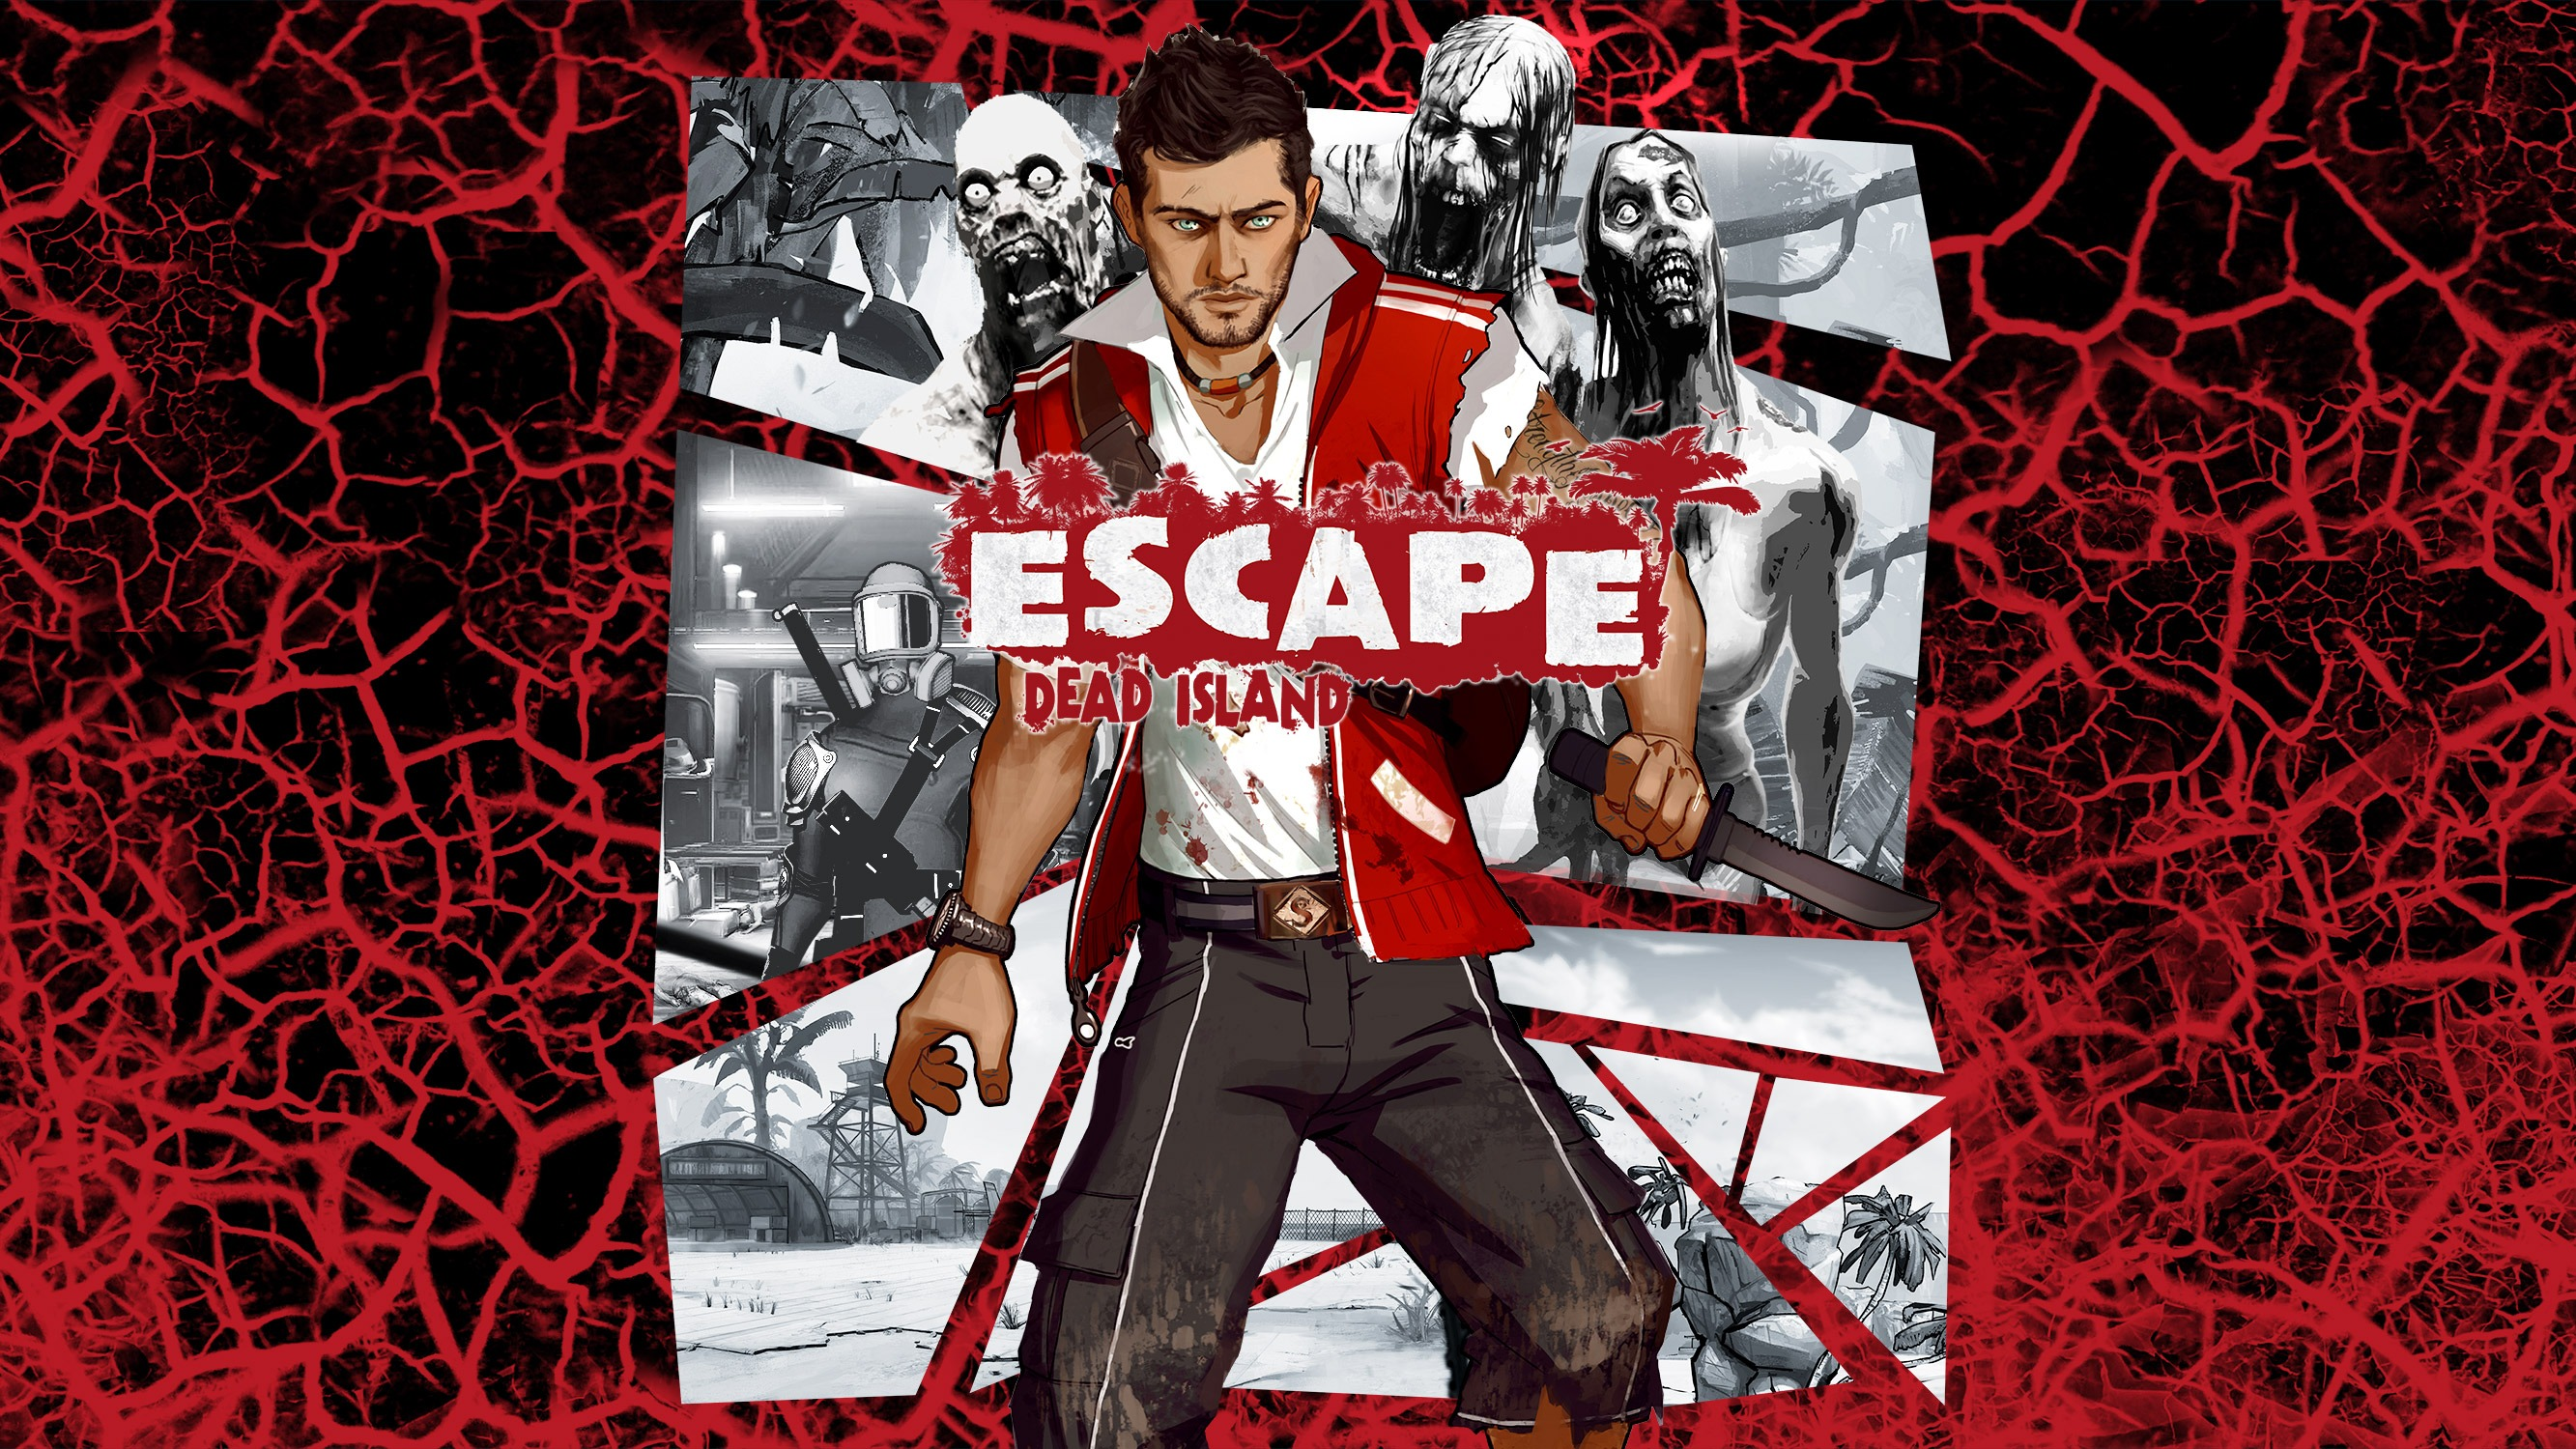 Escape Dead Island (Video Game) - TV Tropes